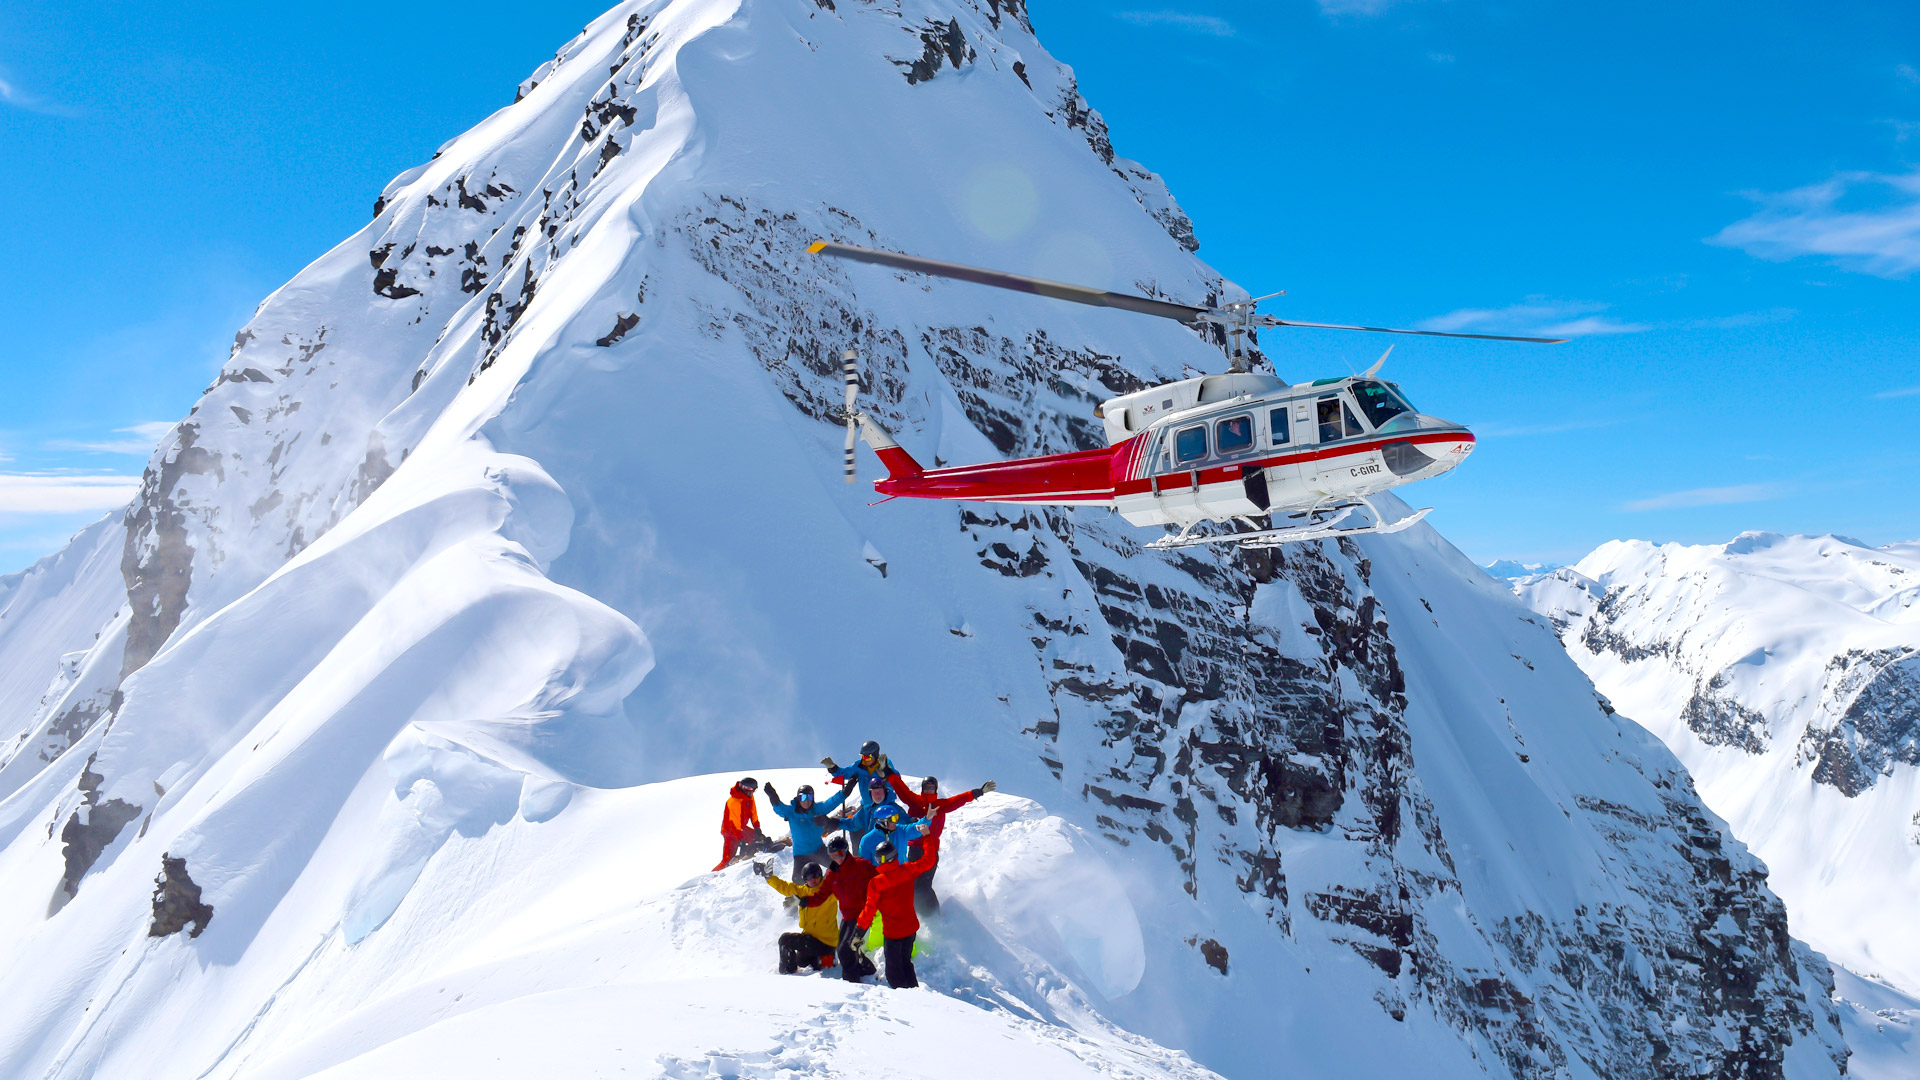 heli-skiing group waving to helicopter on mountain in canada